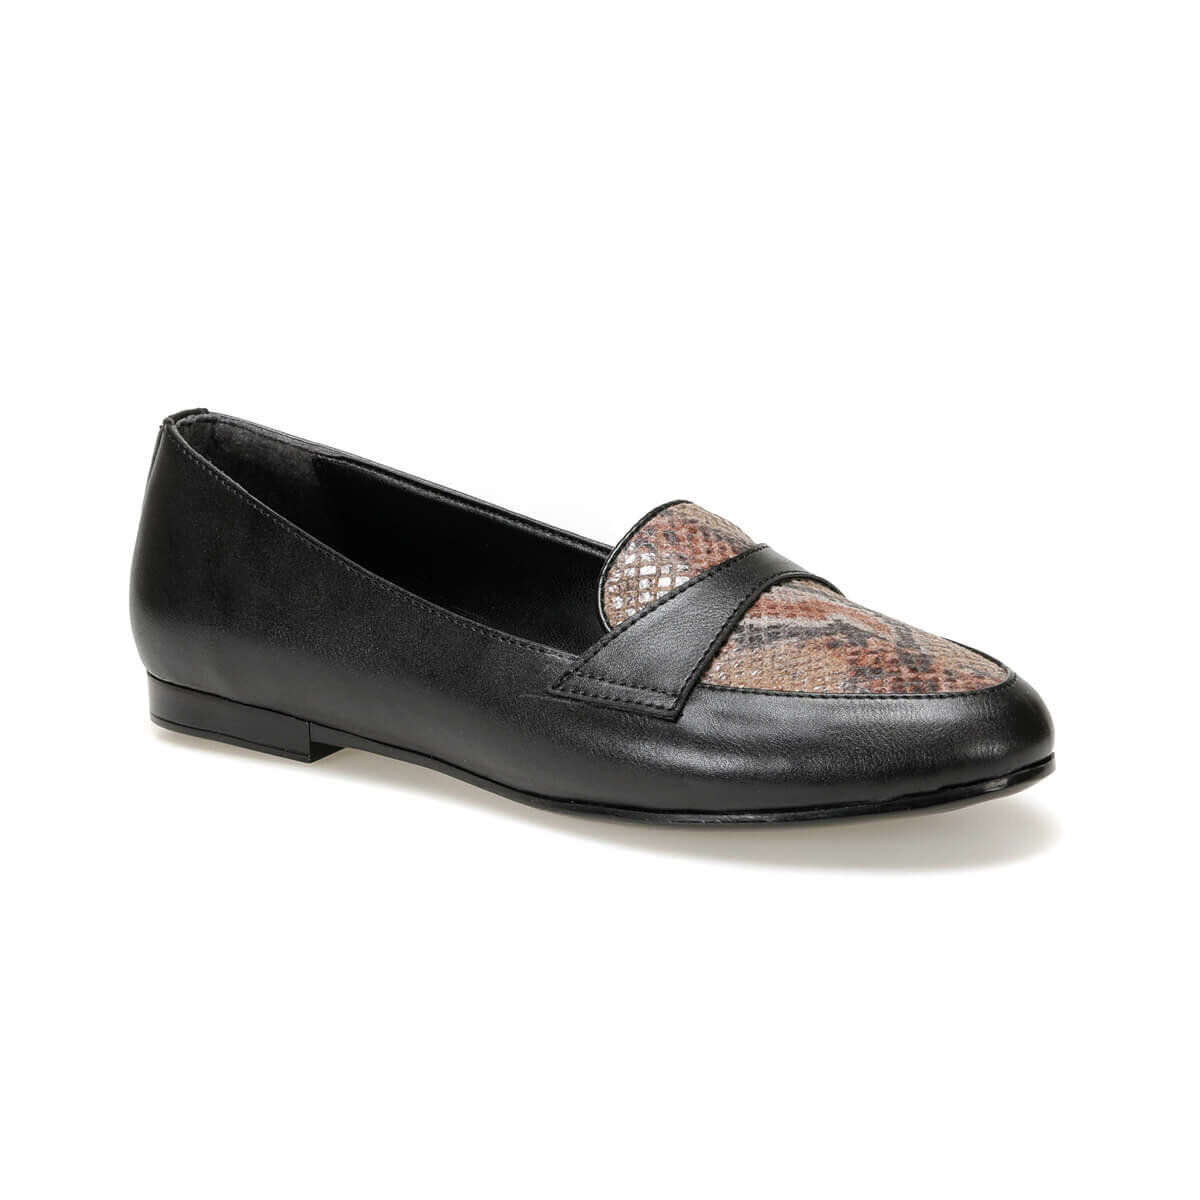 FLO DW19083 Black Women Loafer Shoes Miss F